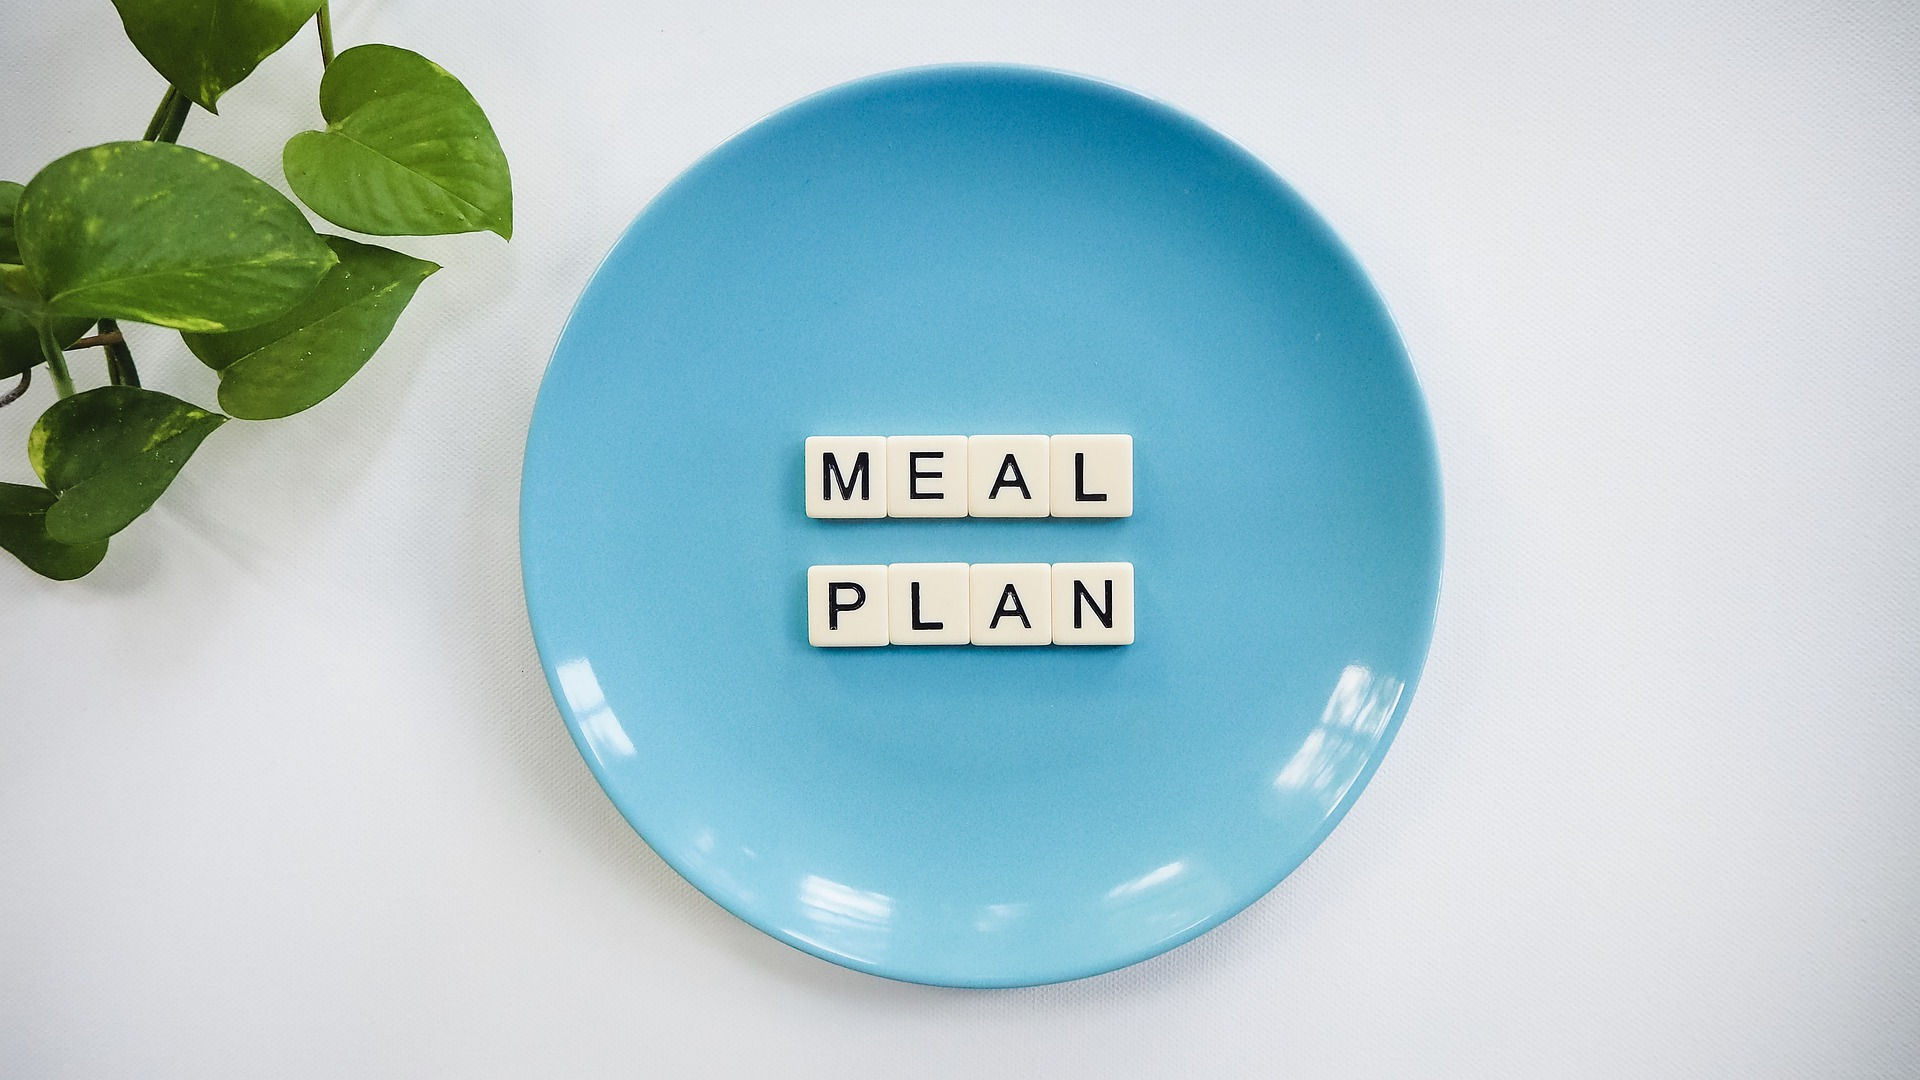 meal-plan-Image by Vegan Liftz from Pixabay